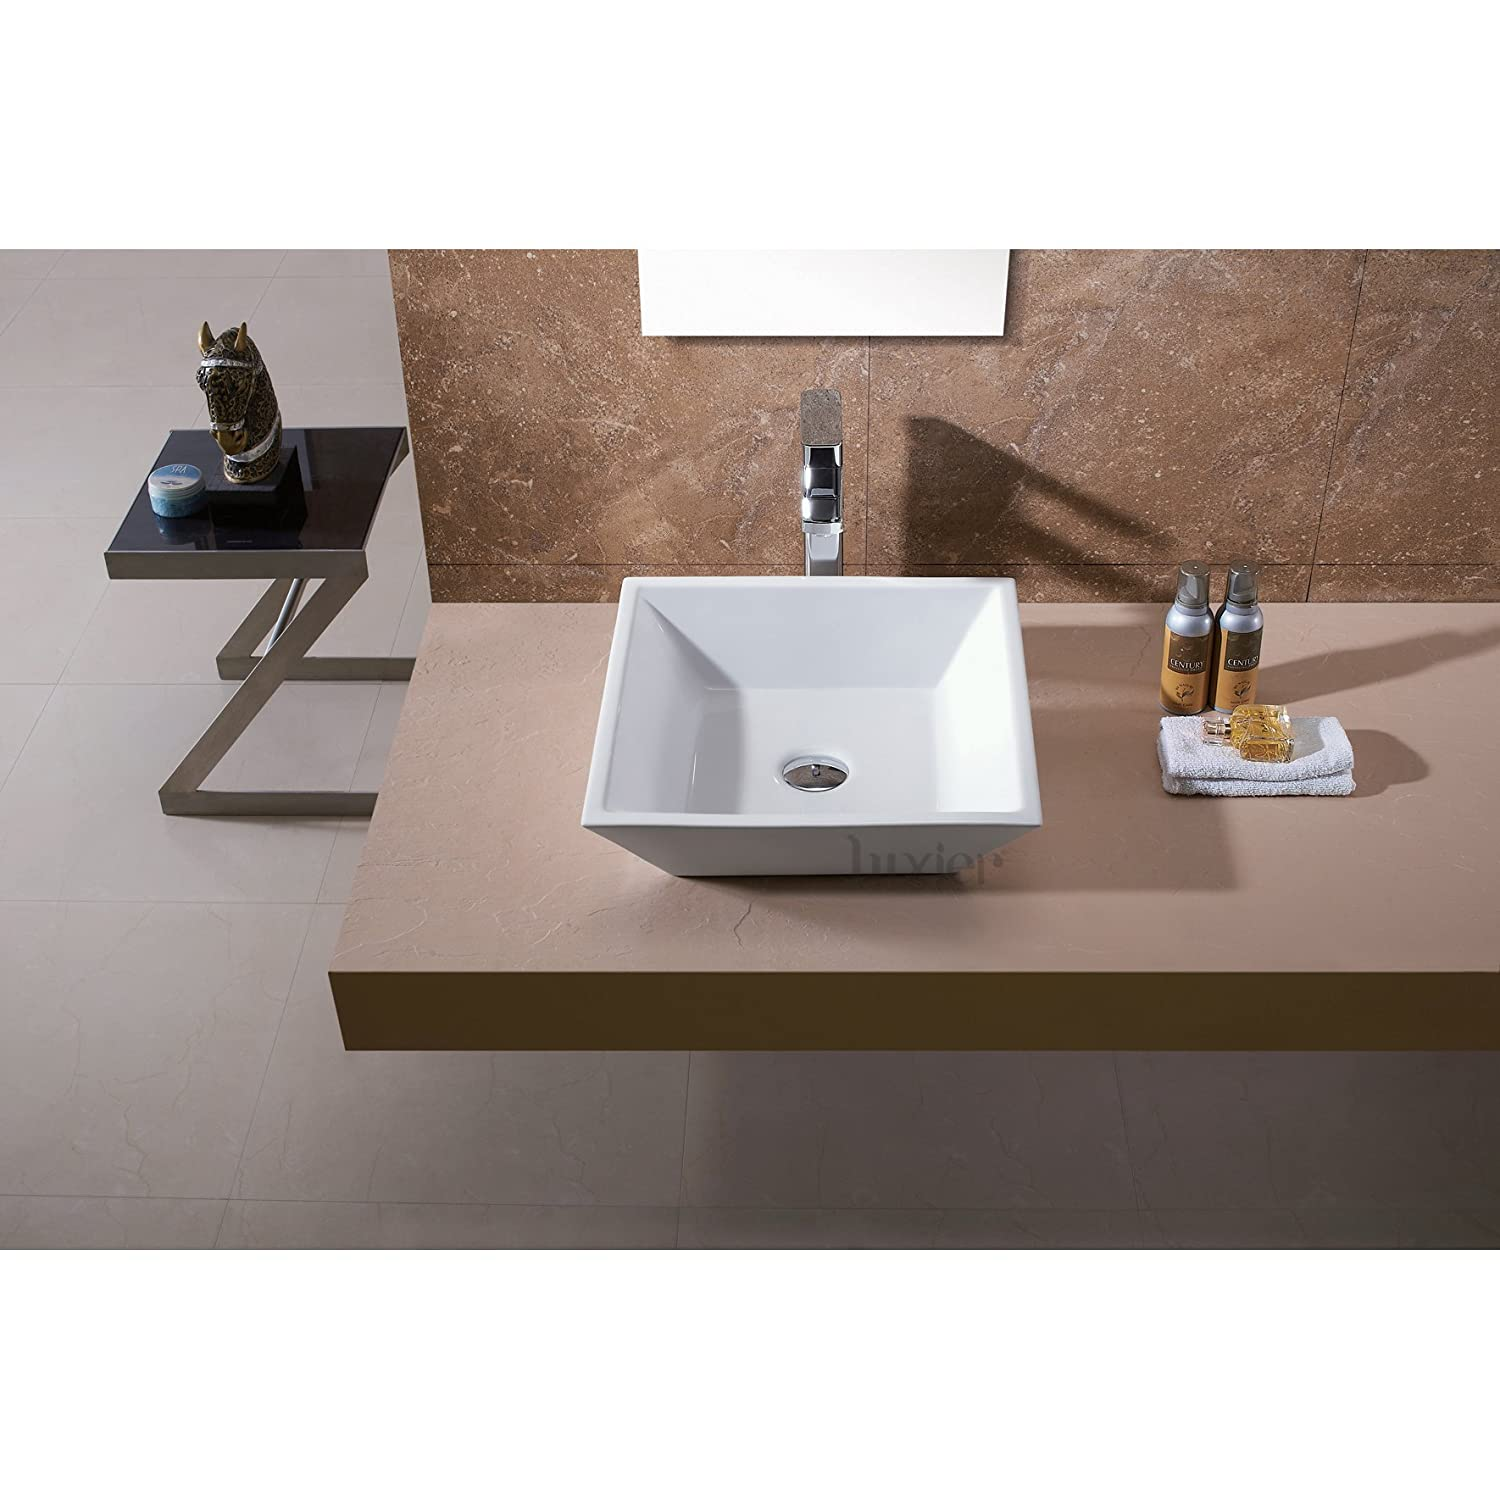 Bathroom available in 5 finishes vessel bathroom sinks msrp 425 - Luxier Cs 006 Bathroom Porcelain Ceramic Vessel Vanity Sink Art Basin Amazon Com